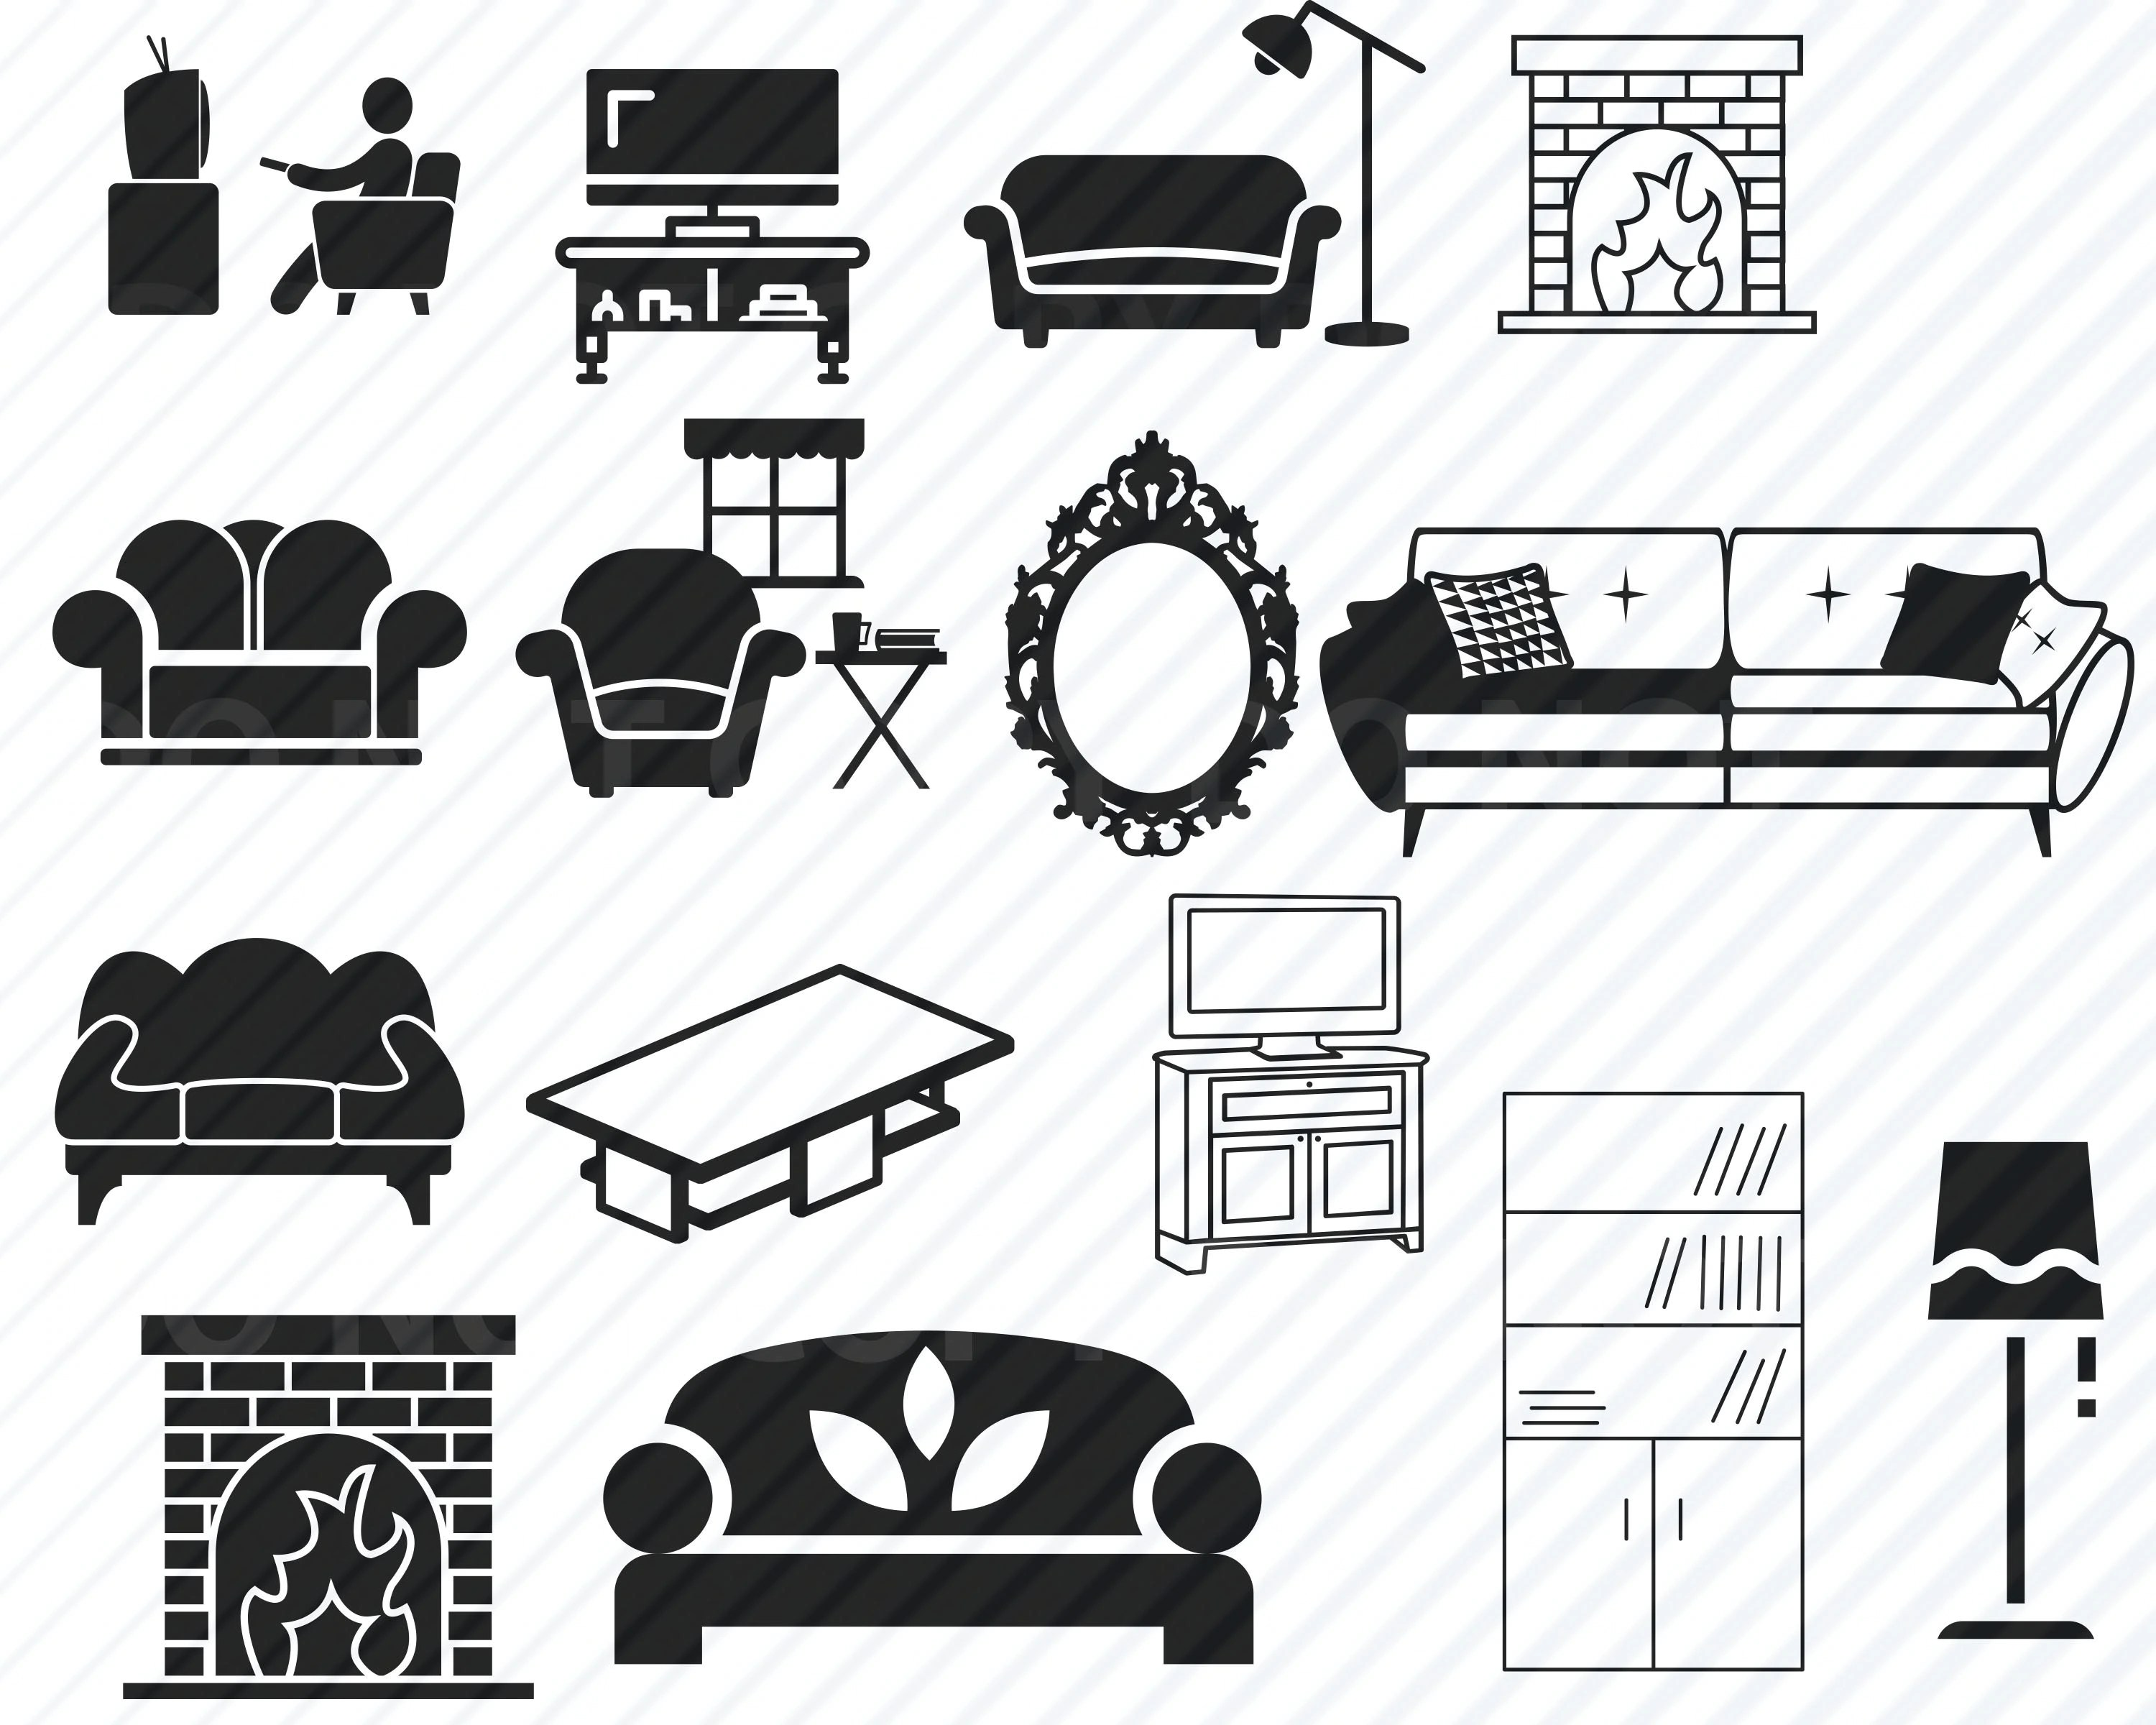 Sofa Set Vector Png Living Room Furniture Svg Bundle Couch Chair Table Silhouette Clip Art Sofa Svg Files For Cricut Eps Png Dxf Clipart Book Shelf Mirror